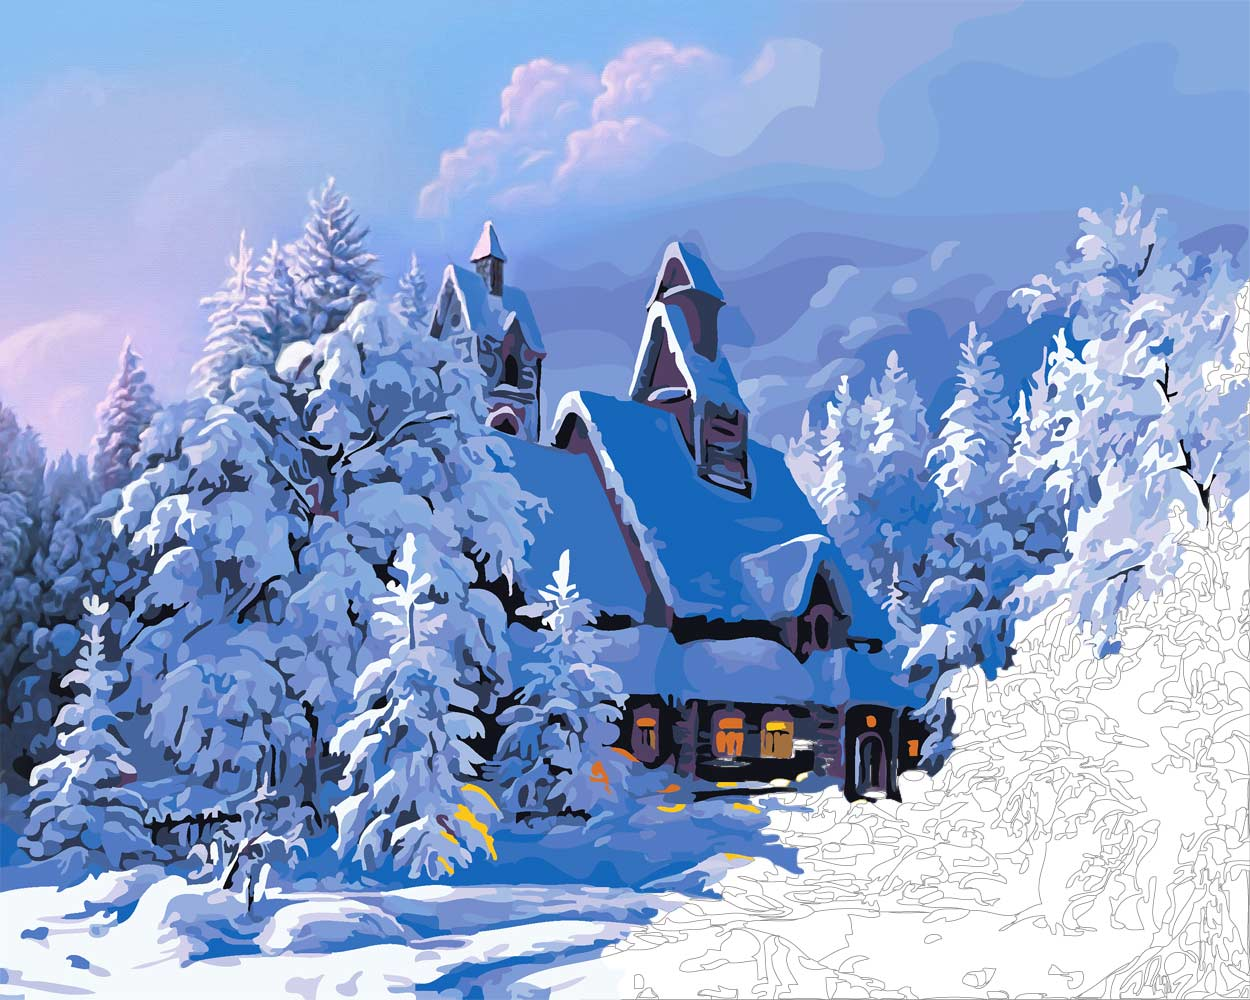 Snow Cabin Winter Landscape Paint By Numbers